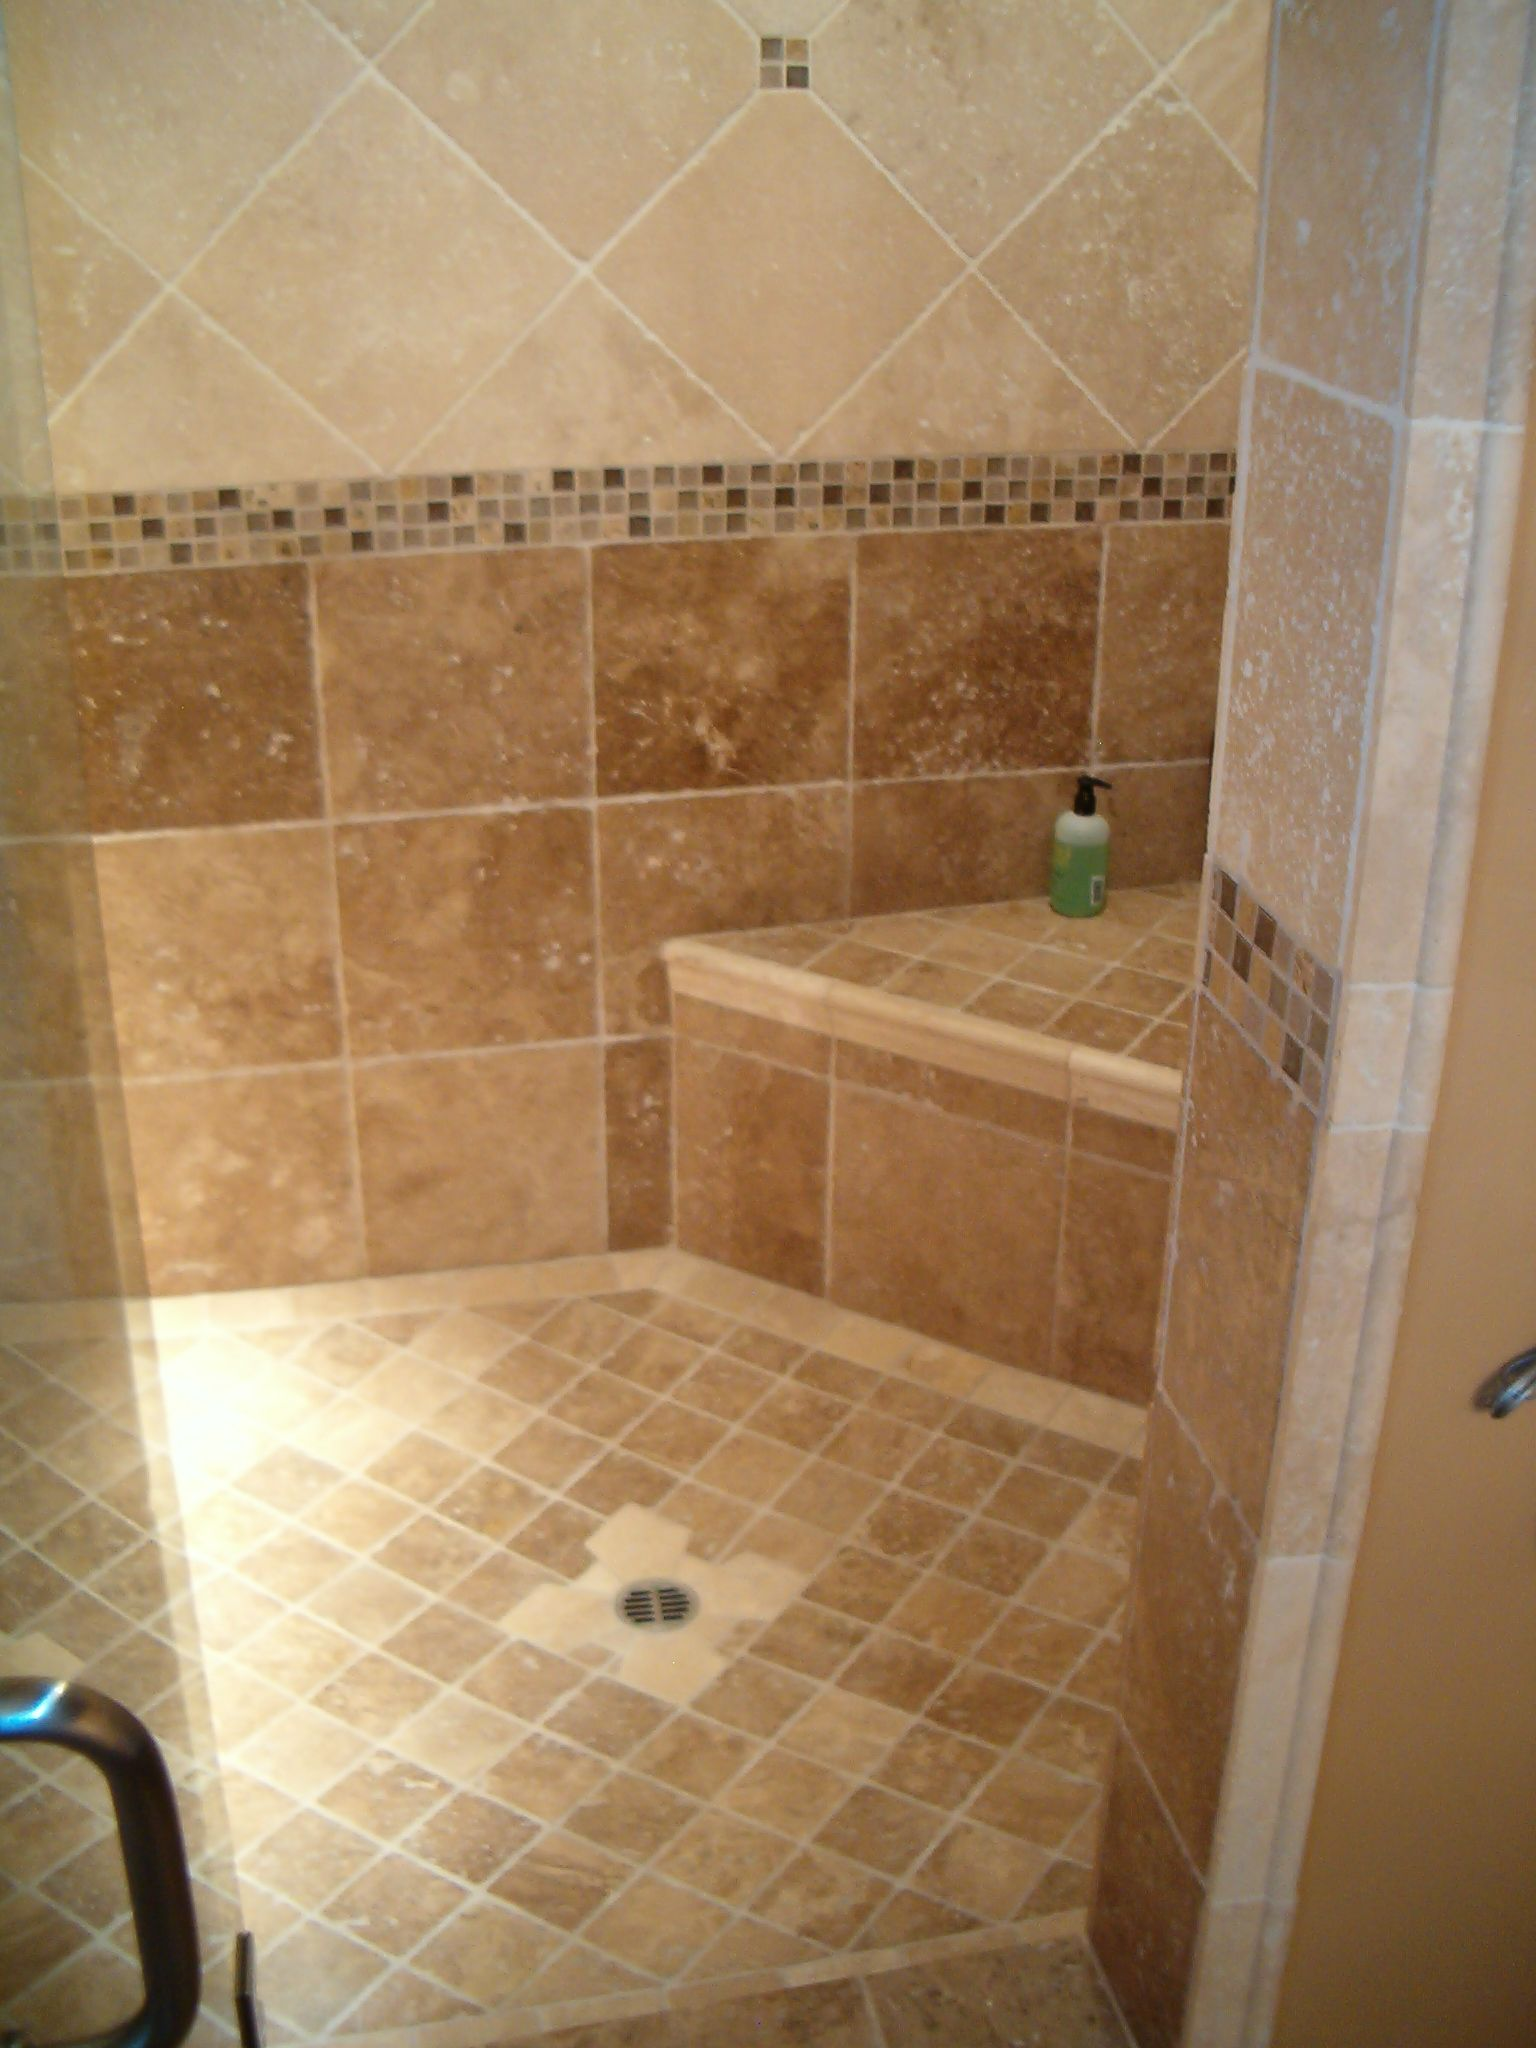 Very Popular Corner Seat With Tile Shower Ideas And Diagonal Tile Top Andu2026